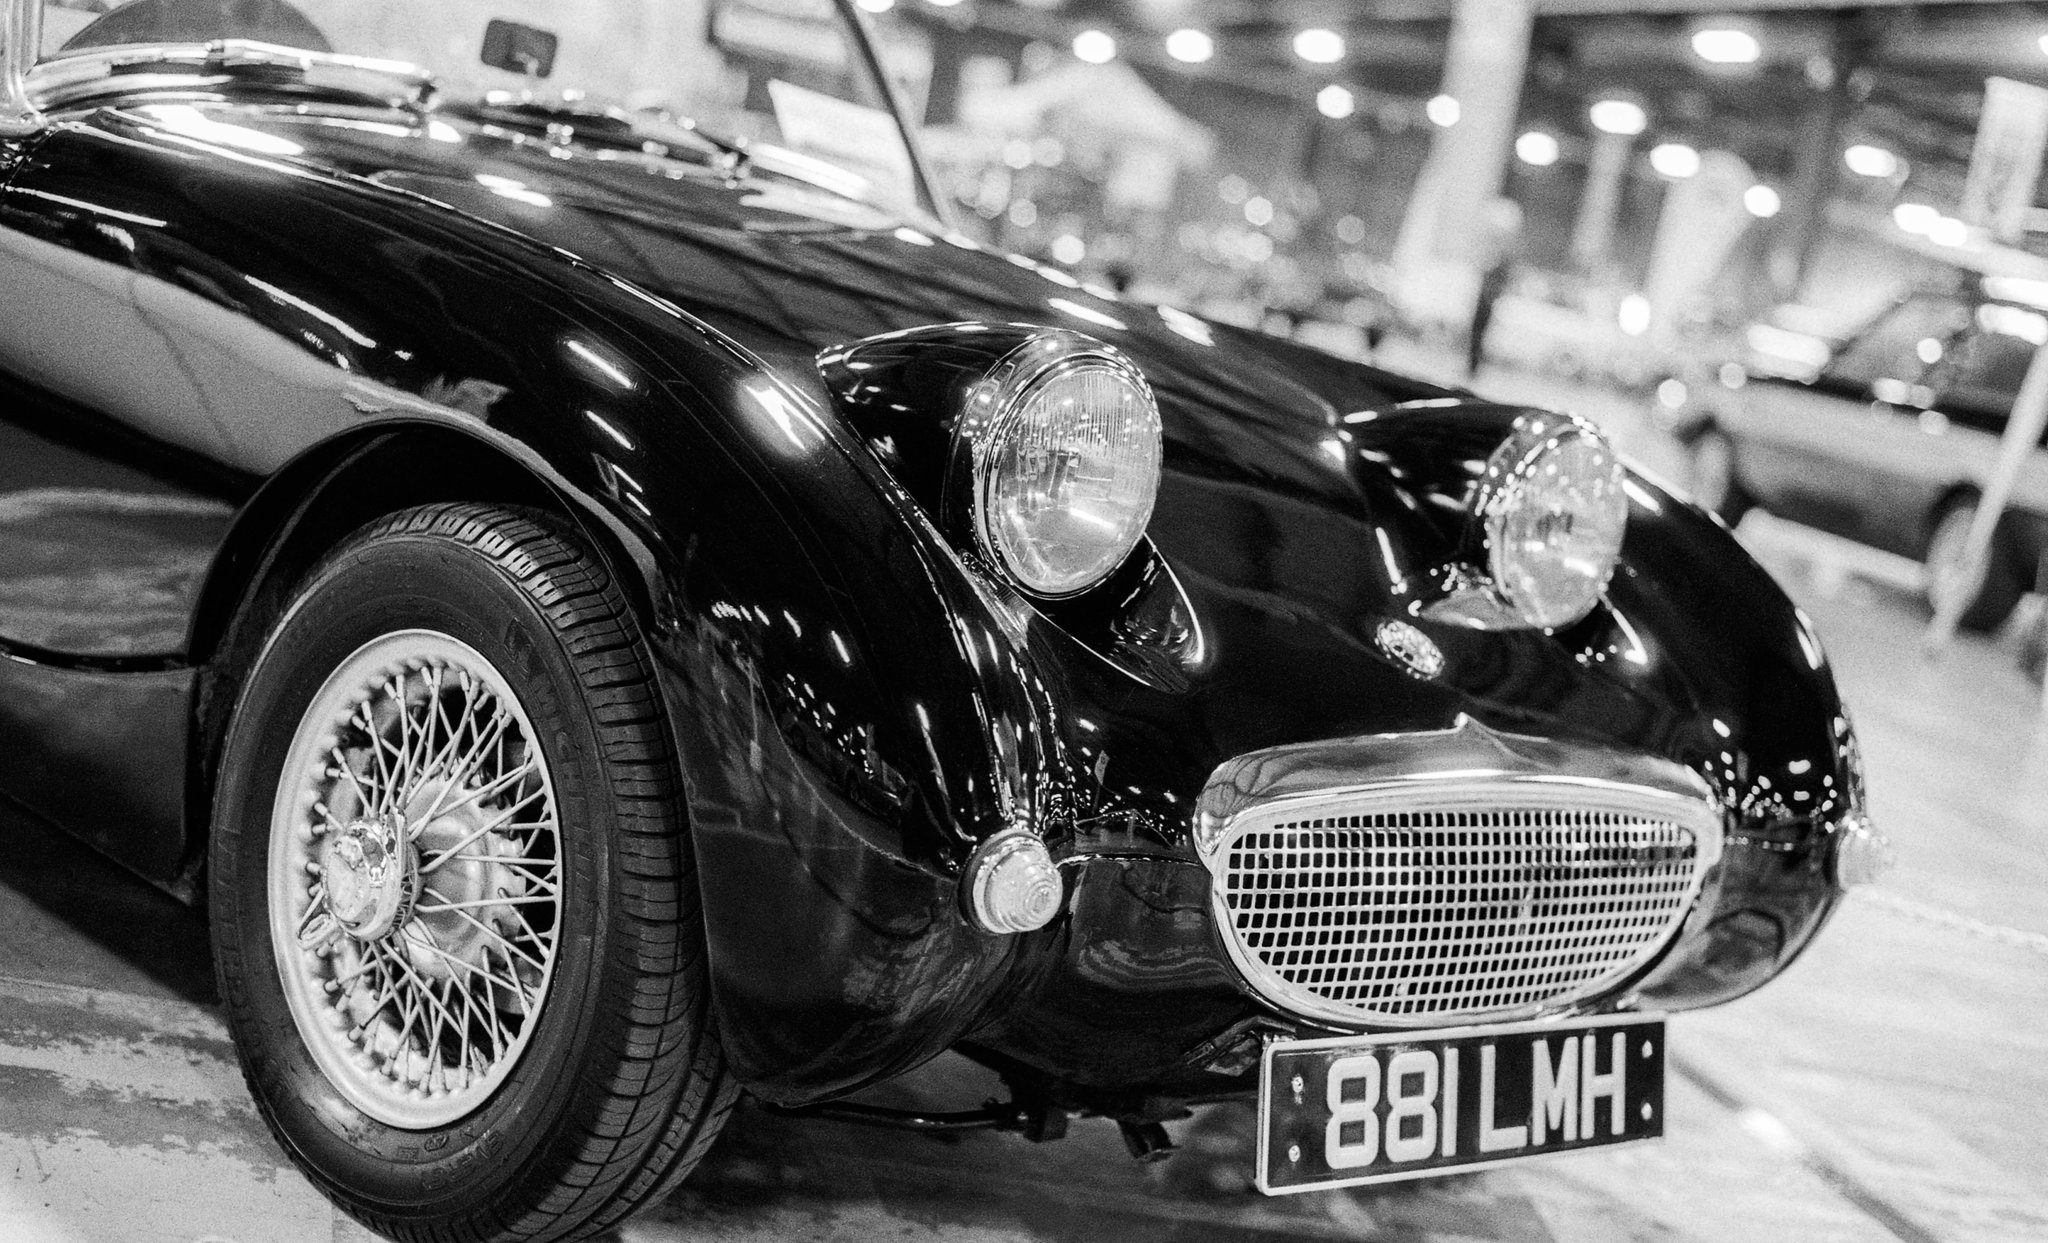 @CamShaw74 Replying to @ILFORDPhoto #ilfordphoto #fridayfavourites #kentmerefilm Austin Healey Sprite, taken at Event City in Manchester. Kentmere 400 pushed to 800 and developed in ilford DD-X(1+4). Pentax K1000 with 50mm f/1.7